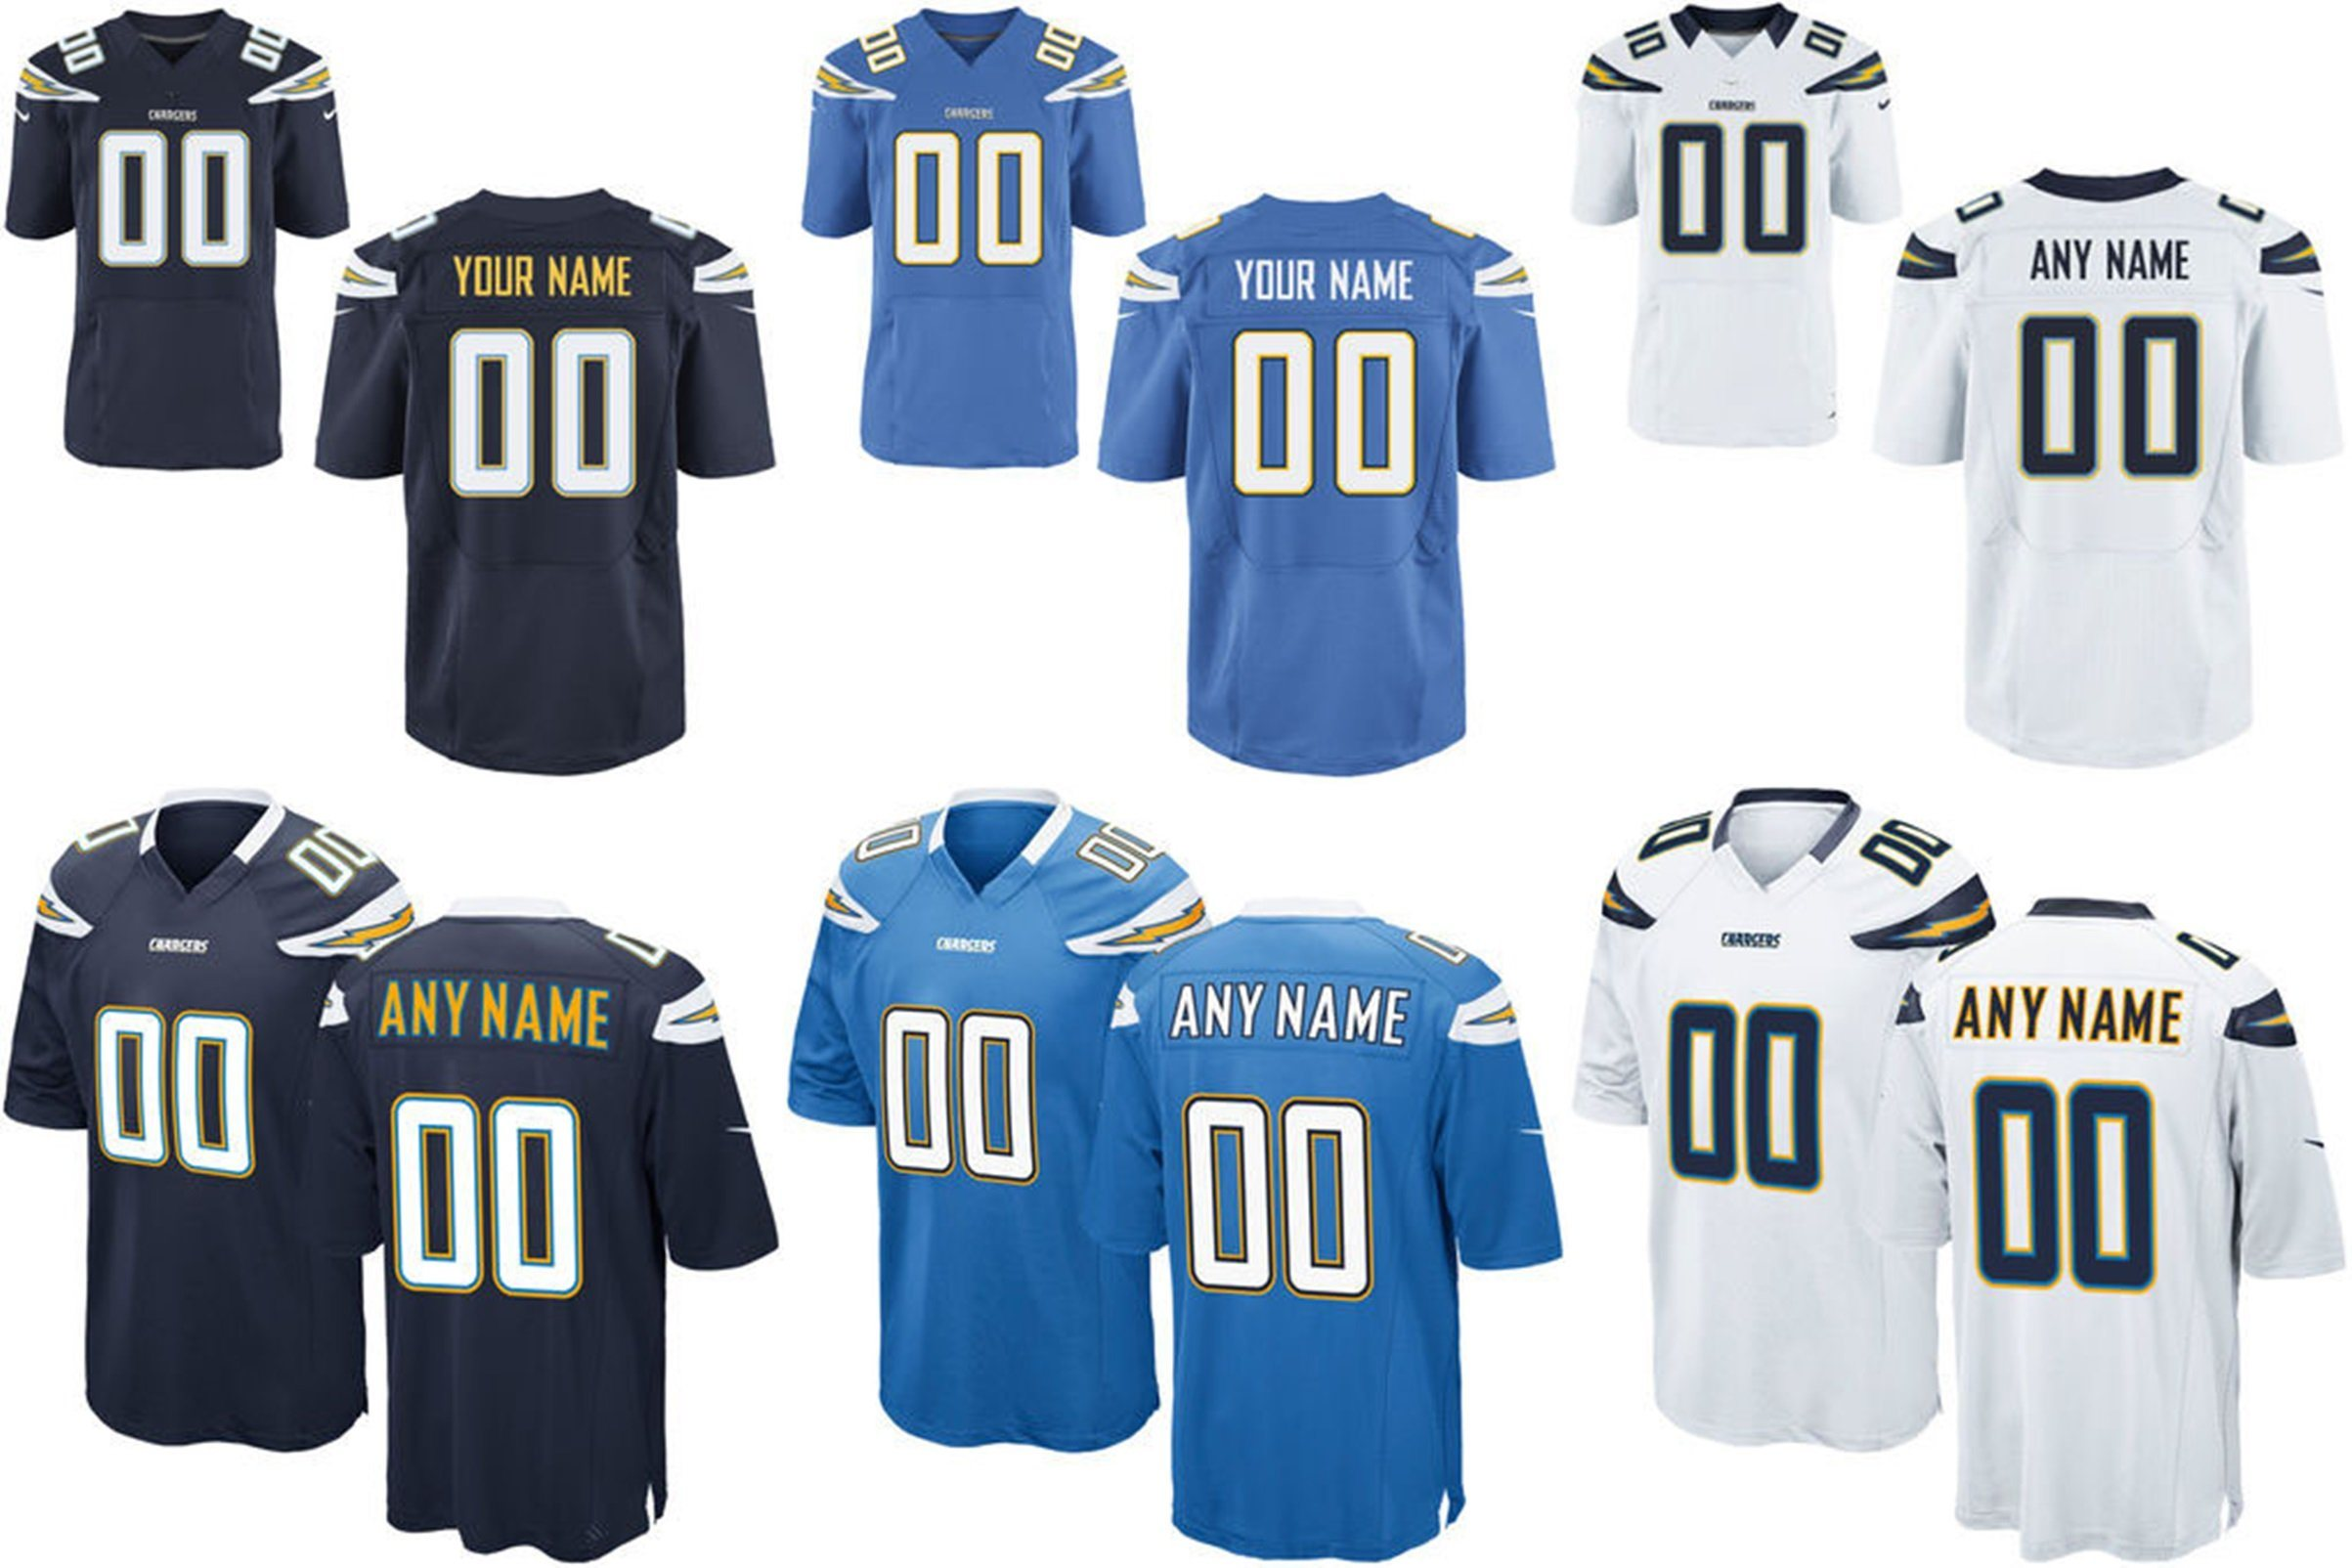 72f6df158 Create Your Own Football Shirt Game – EDGE Engineering and ...